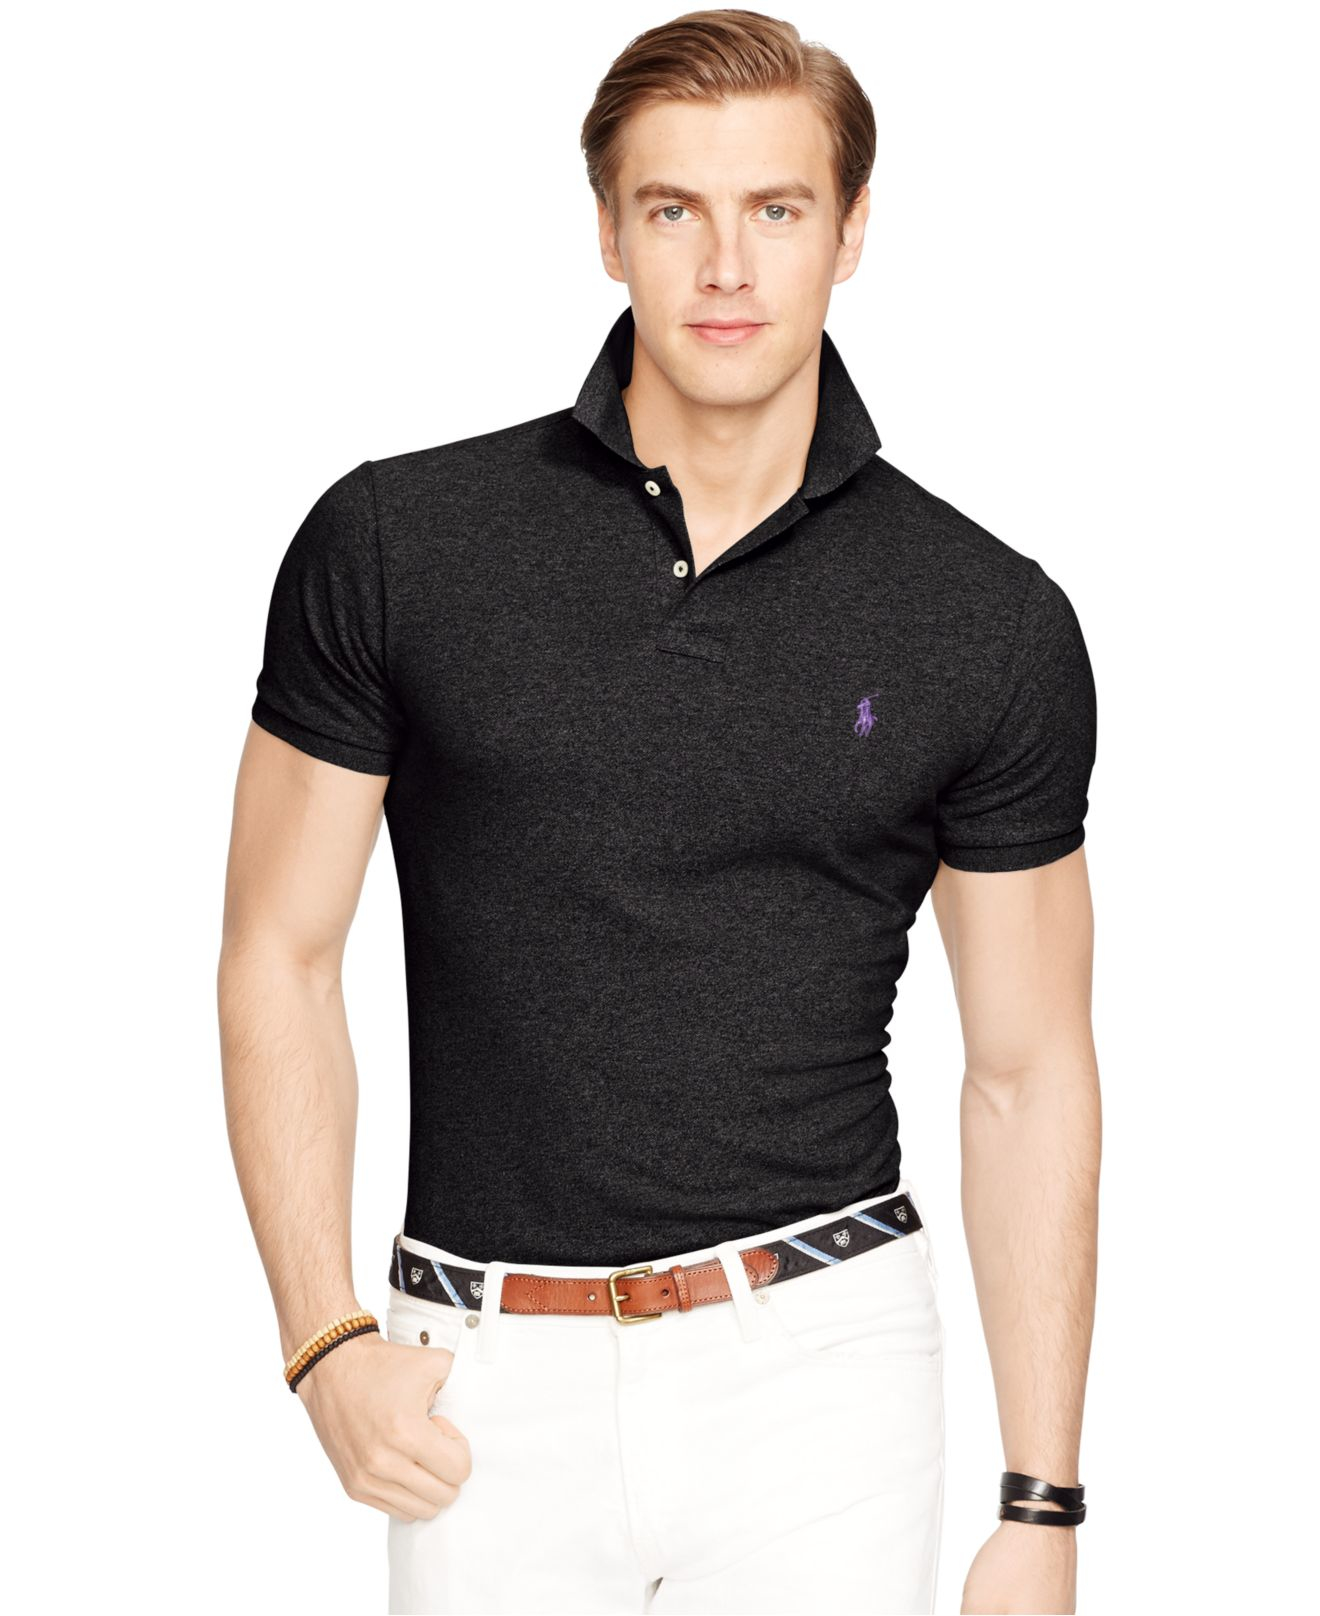 Polo Ralph Shirt Code Cffb8 Lauren T 29854 Fit Discount For Slim fvyYb76g